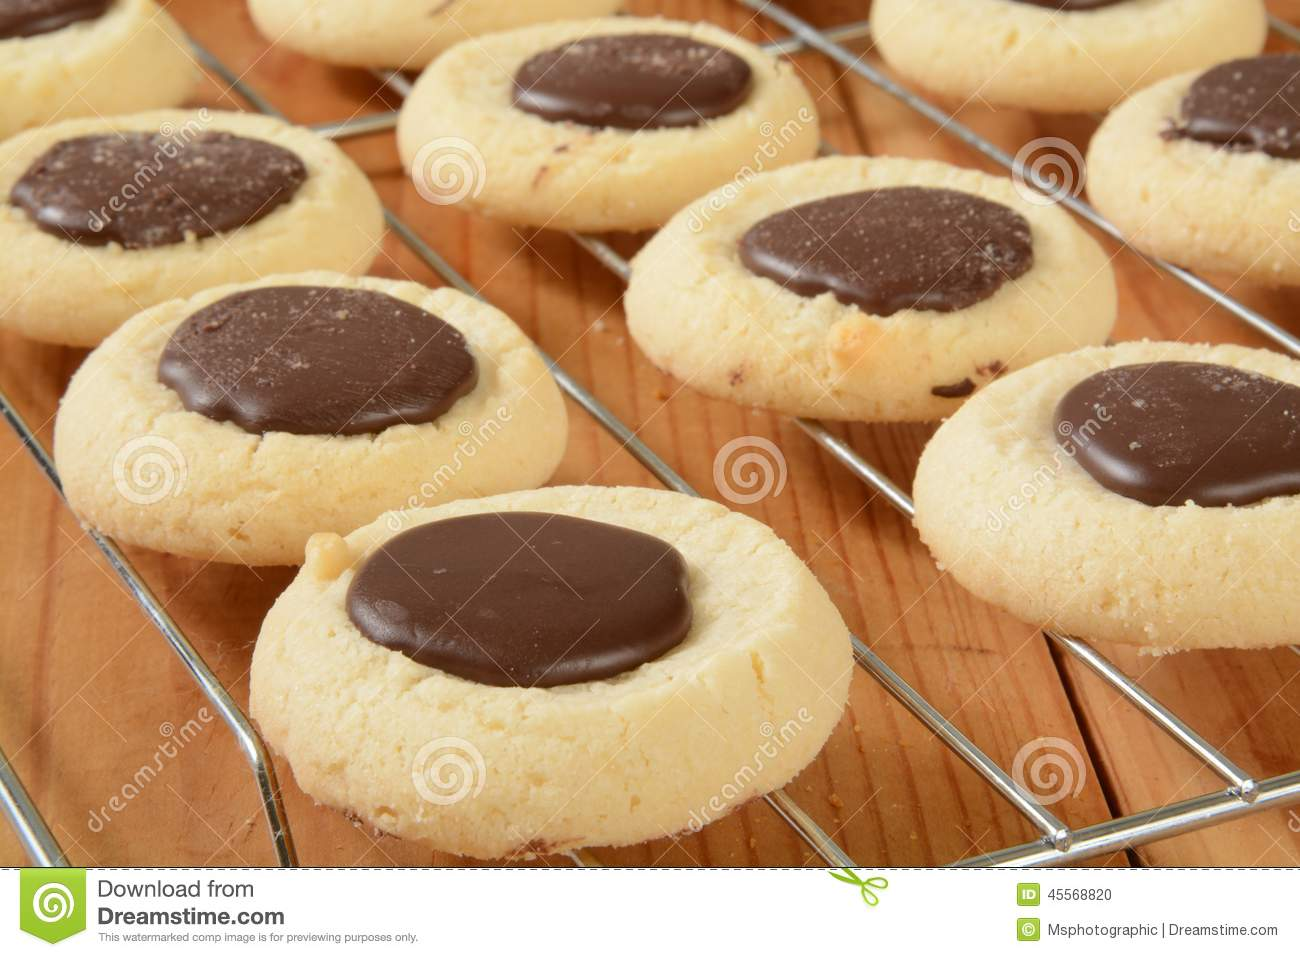 Chocolate Drop Cookies Stock Photo - Image: 45568820